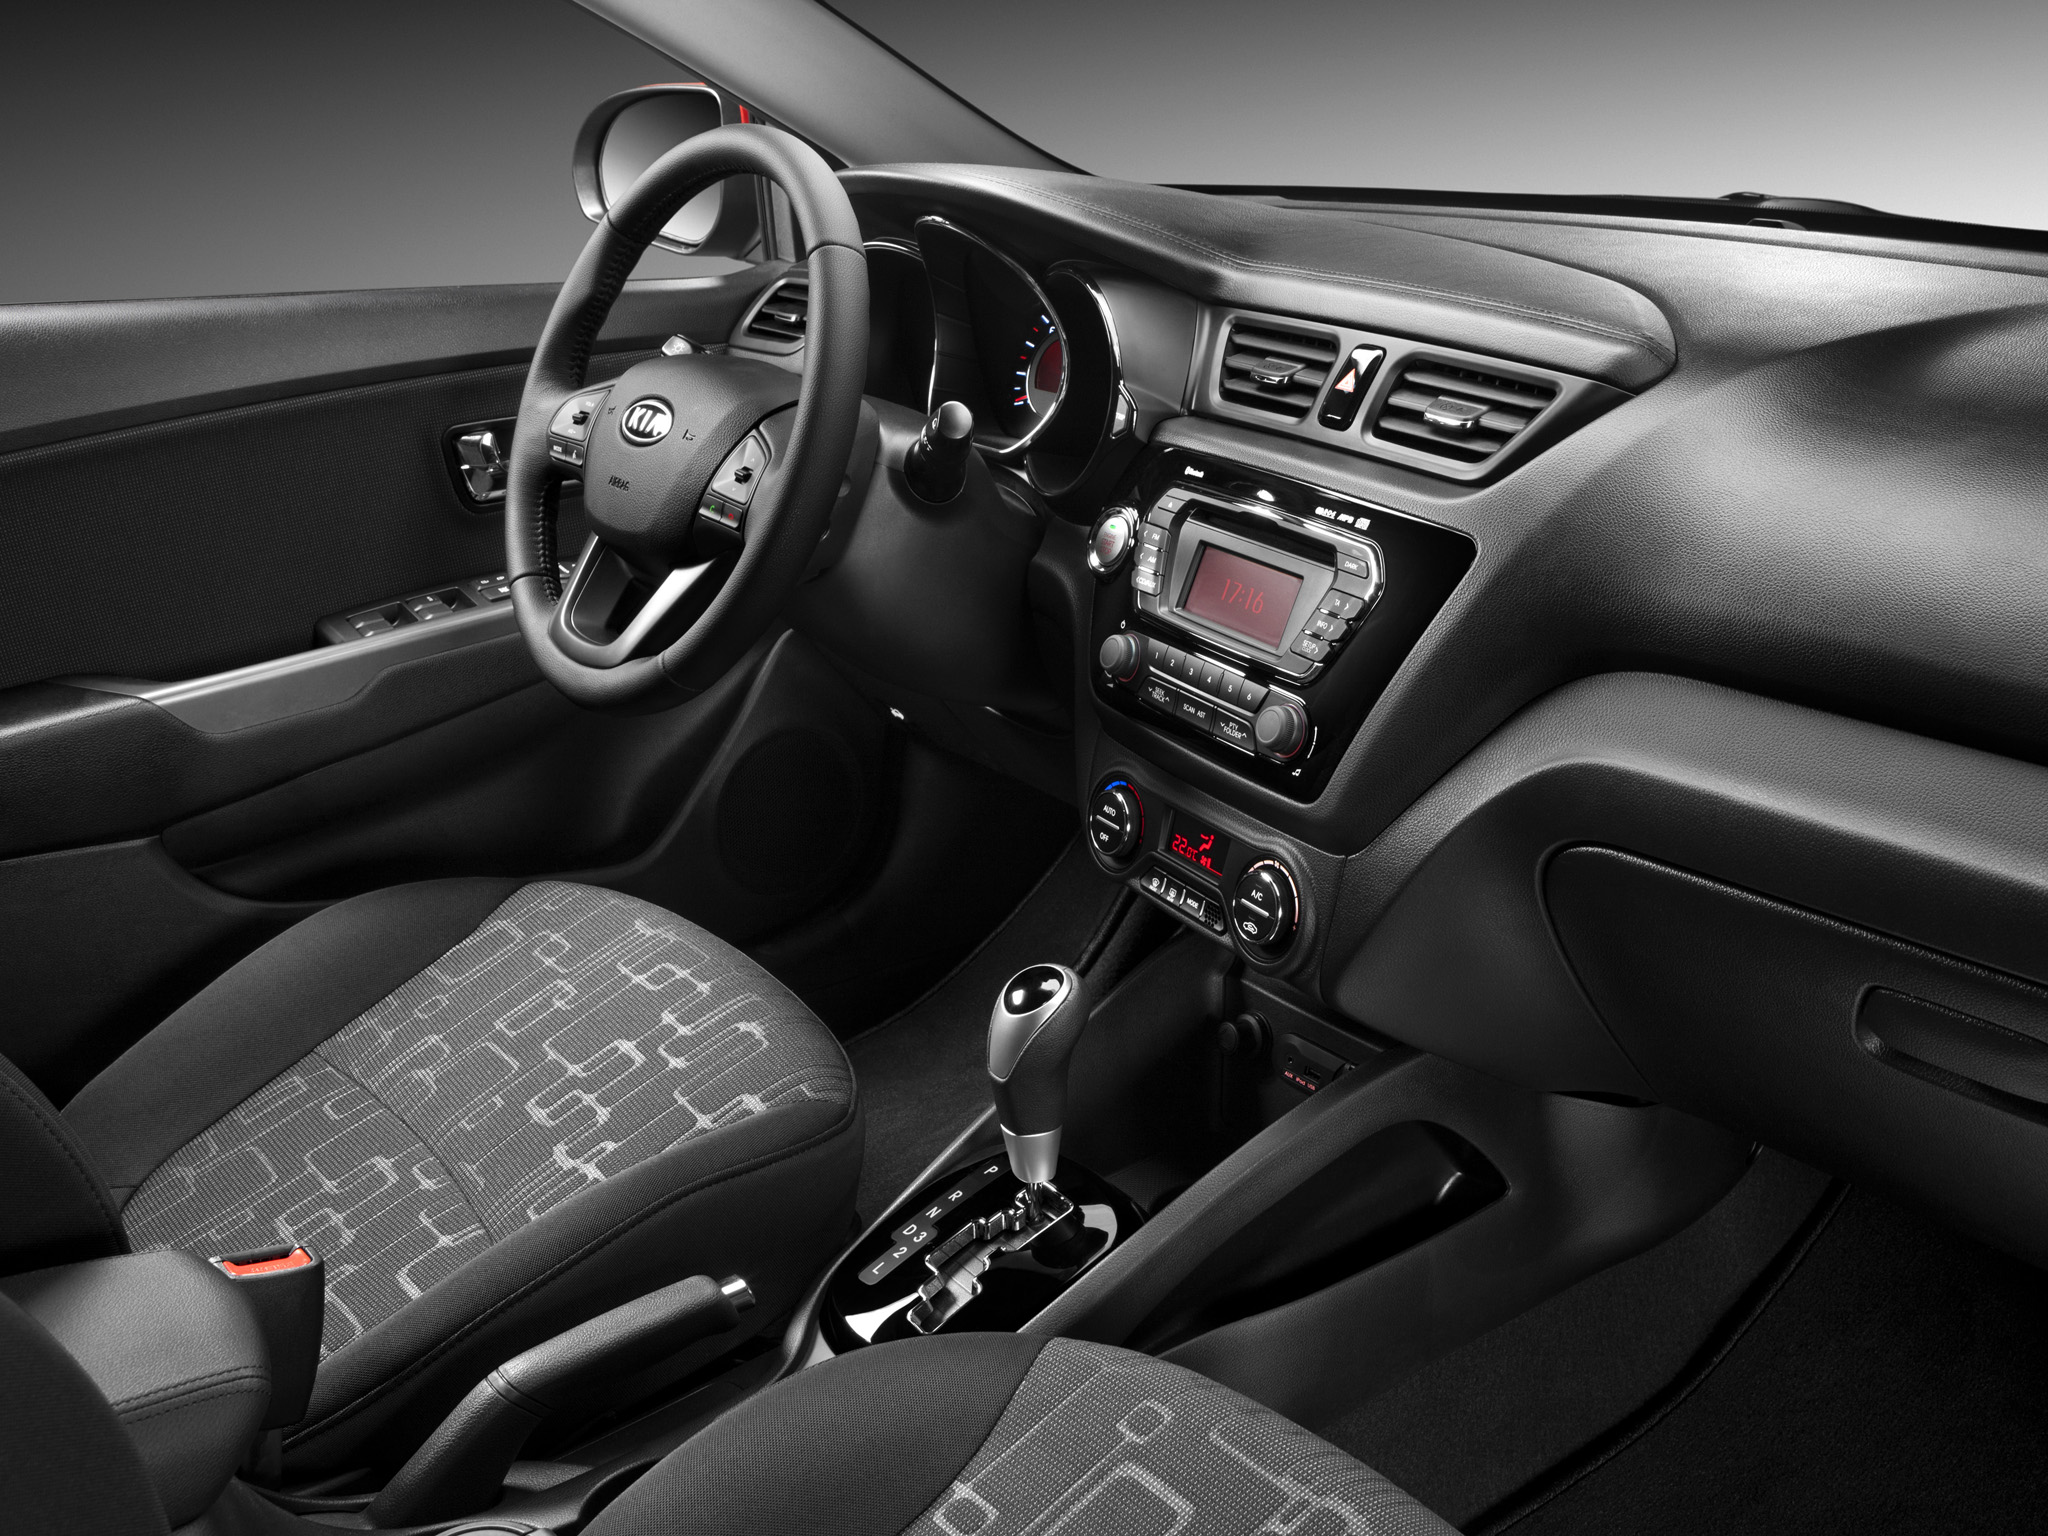 Kia Rio Sedan Interior